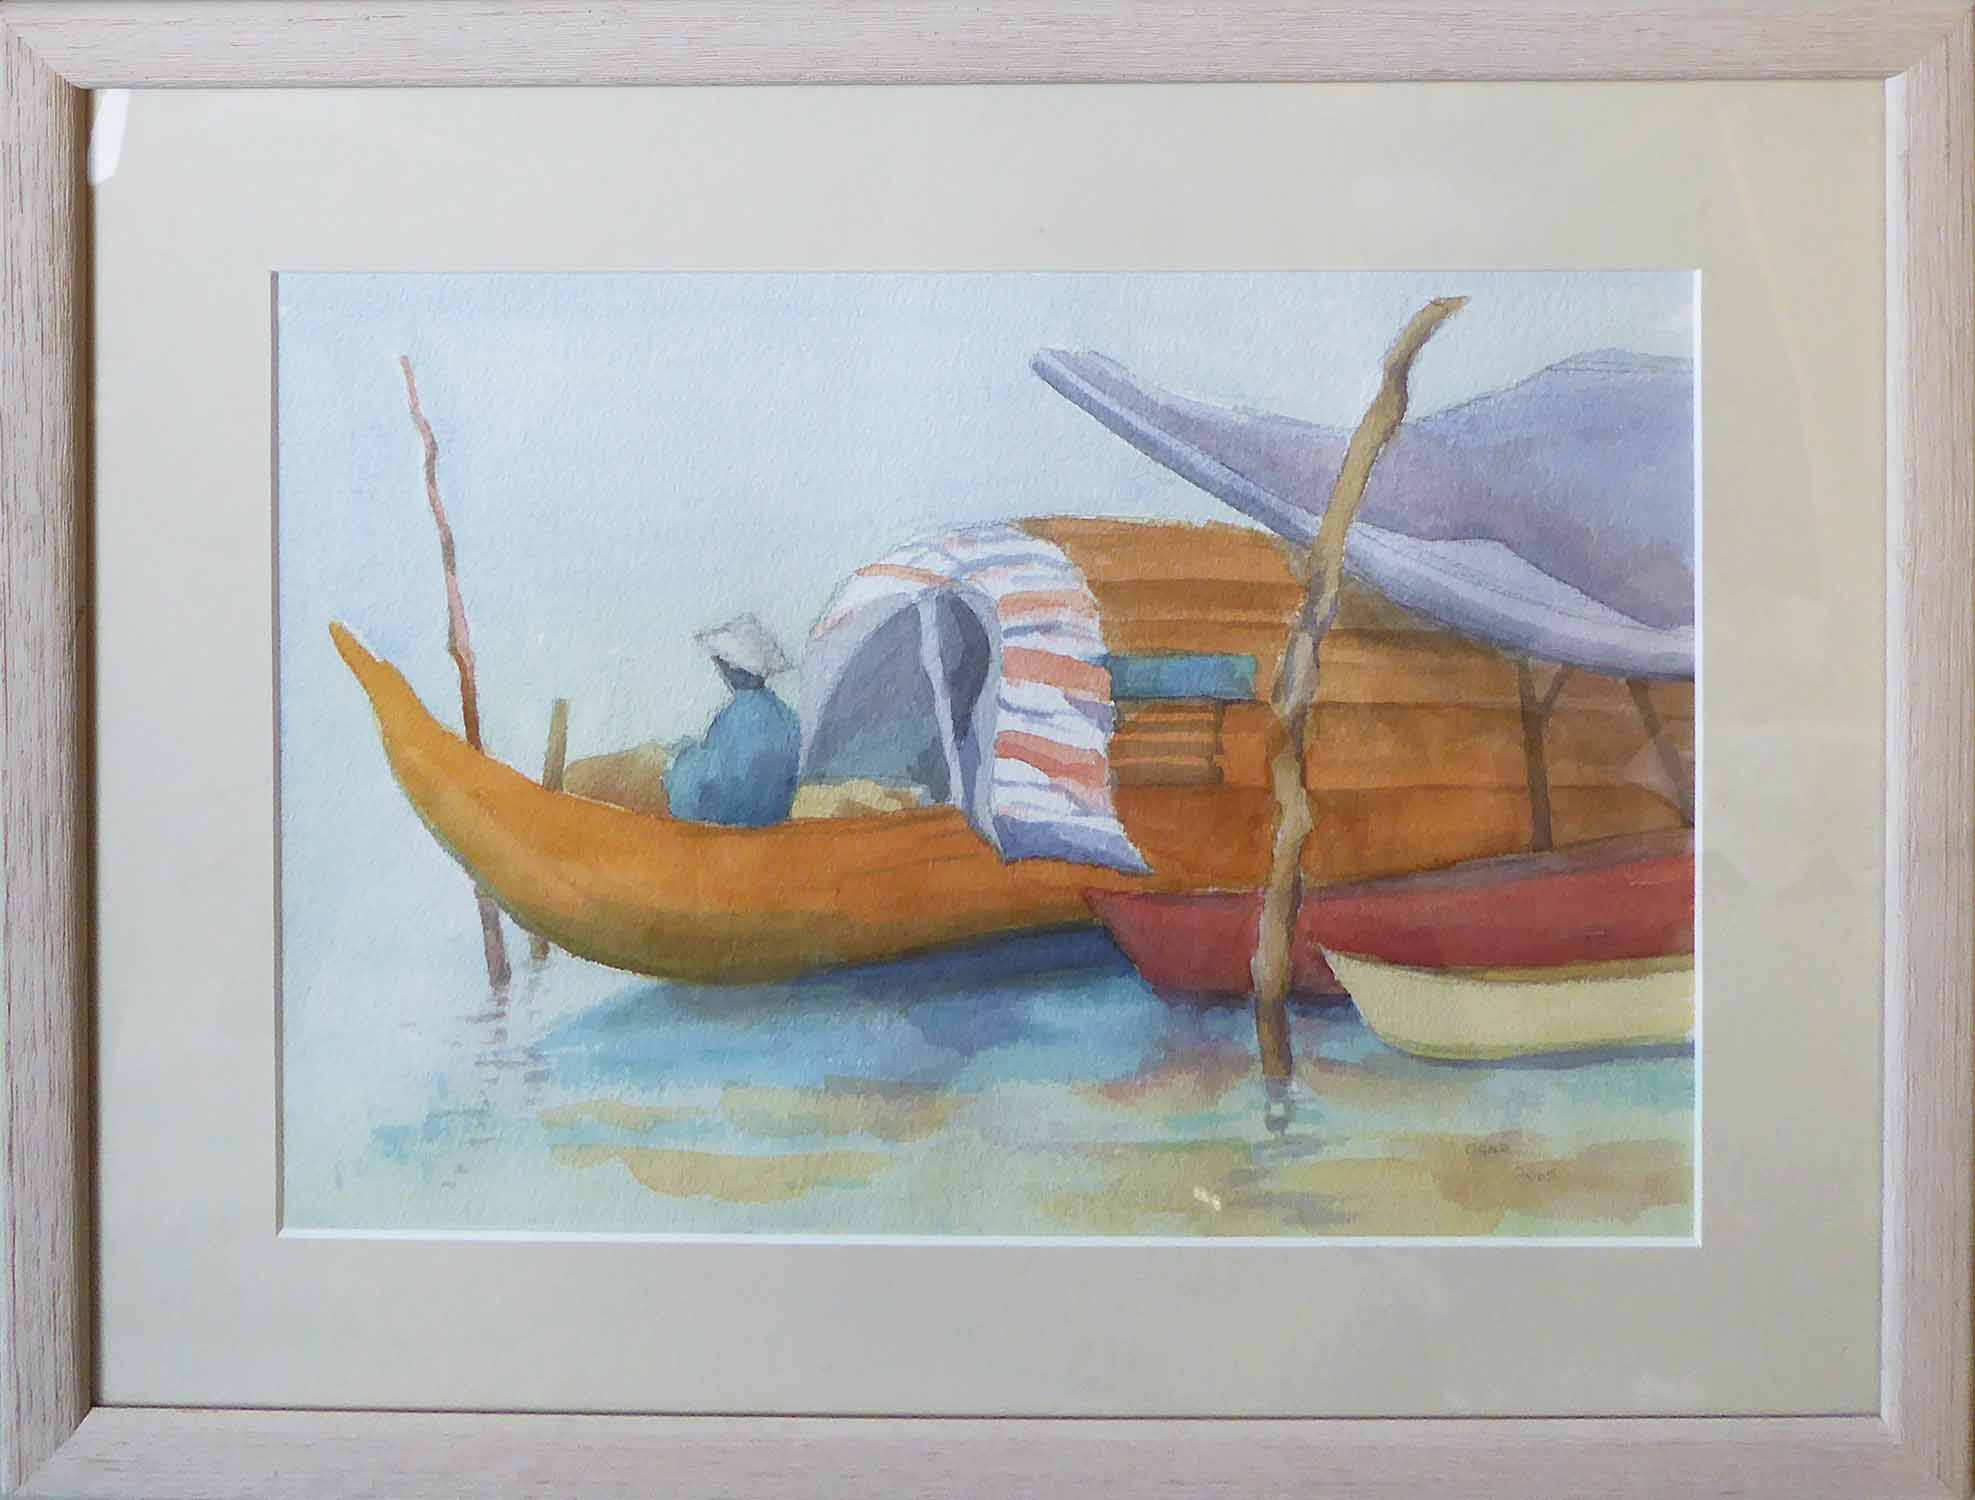 Lot 563 - CHRISTOPHER RYDER 'Cambodian Scene' and 'Coracles-Vietnam', a pair of watercolours, signed,